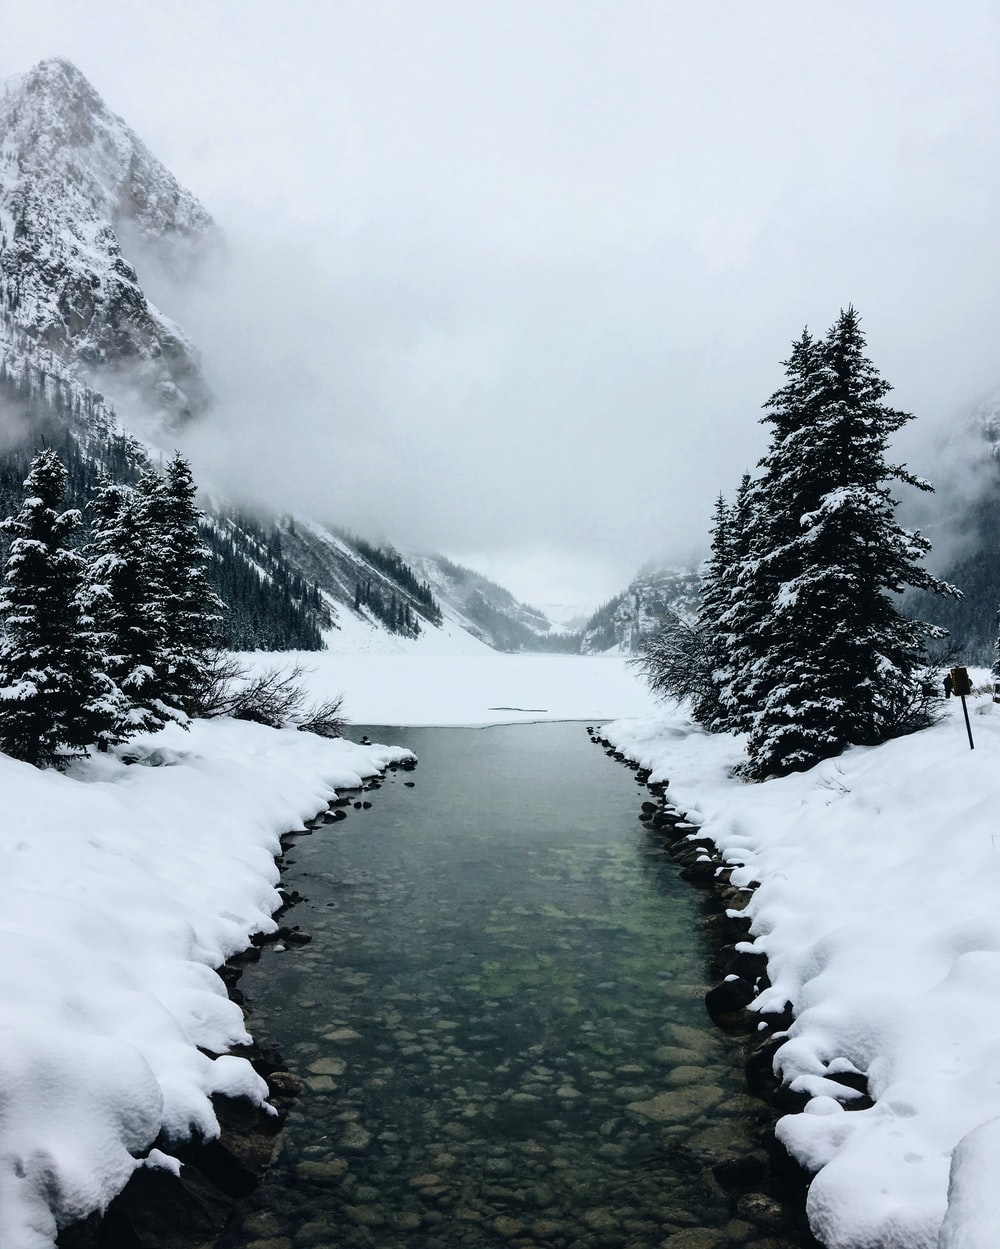 river at glacier mountain with fogs